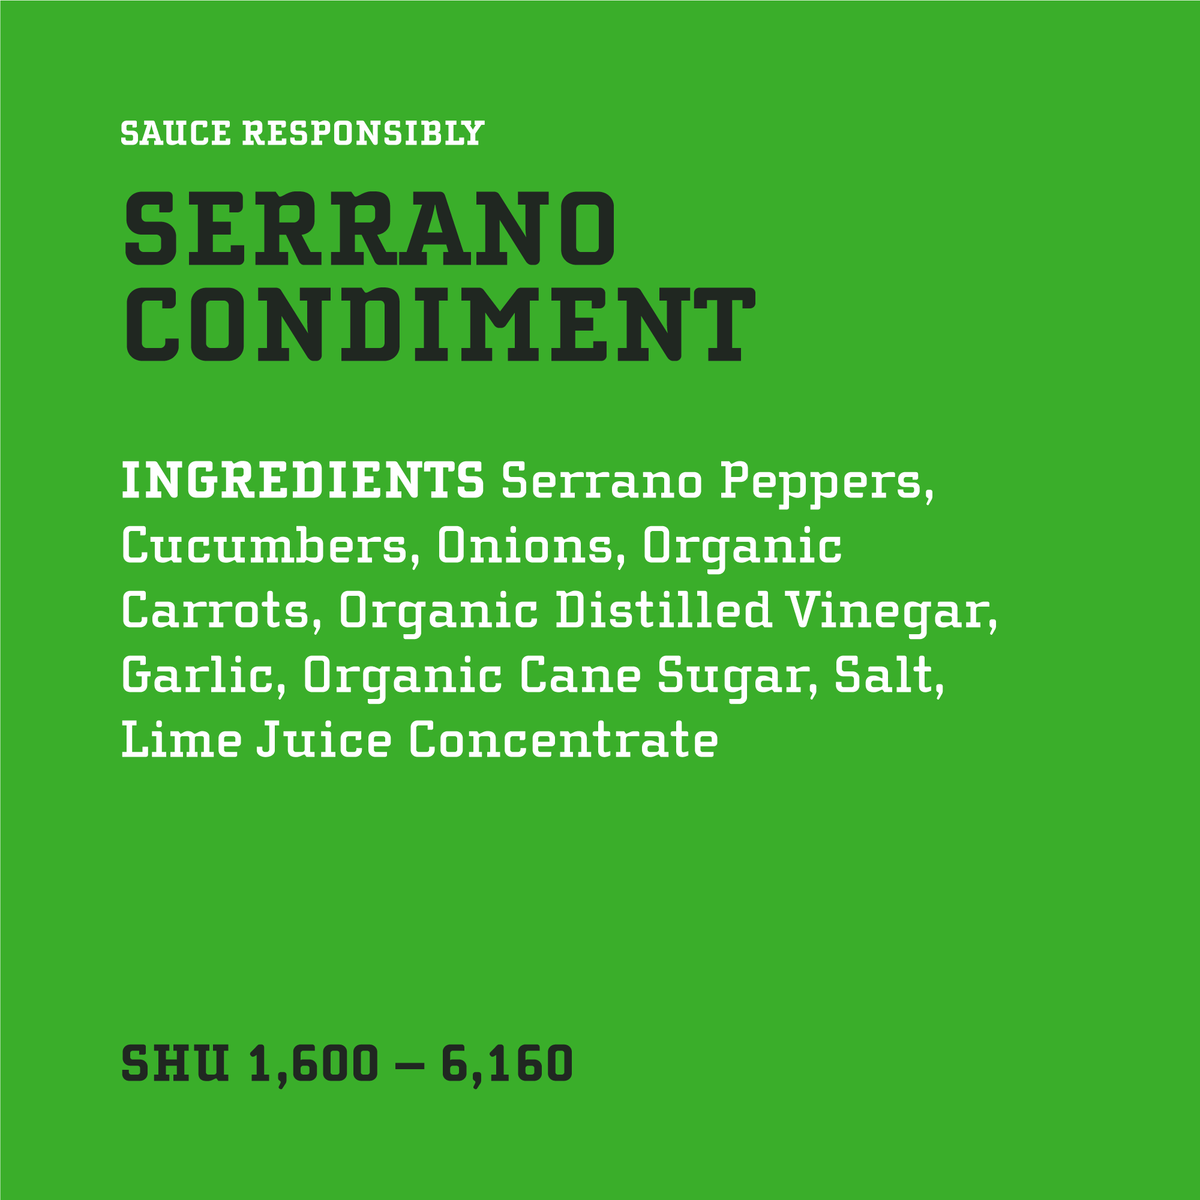 Original Serrano Condiment Multipacks